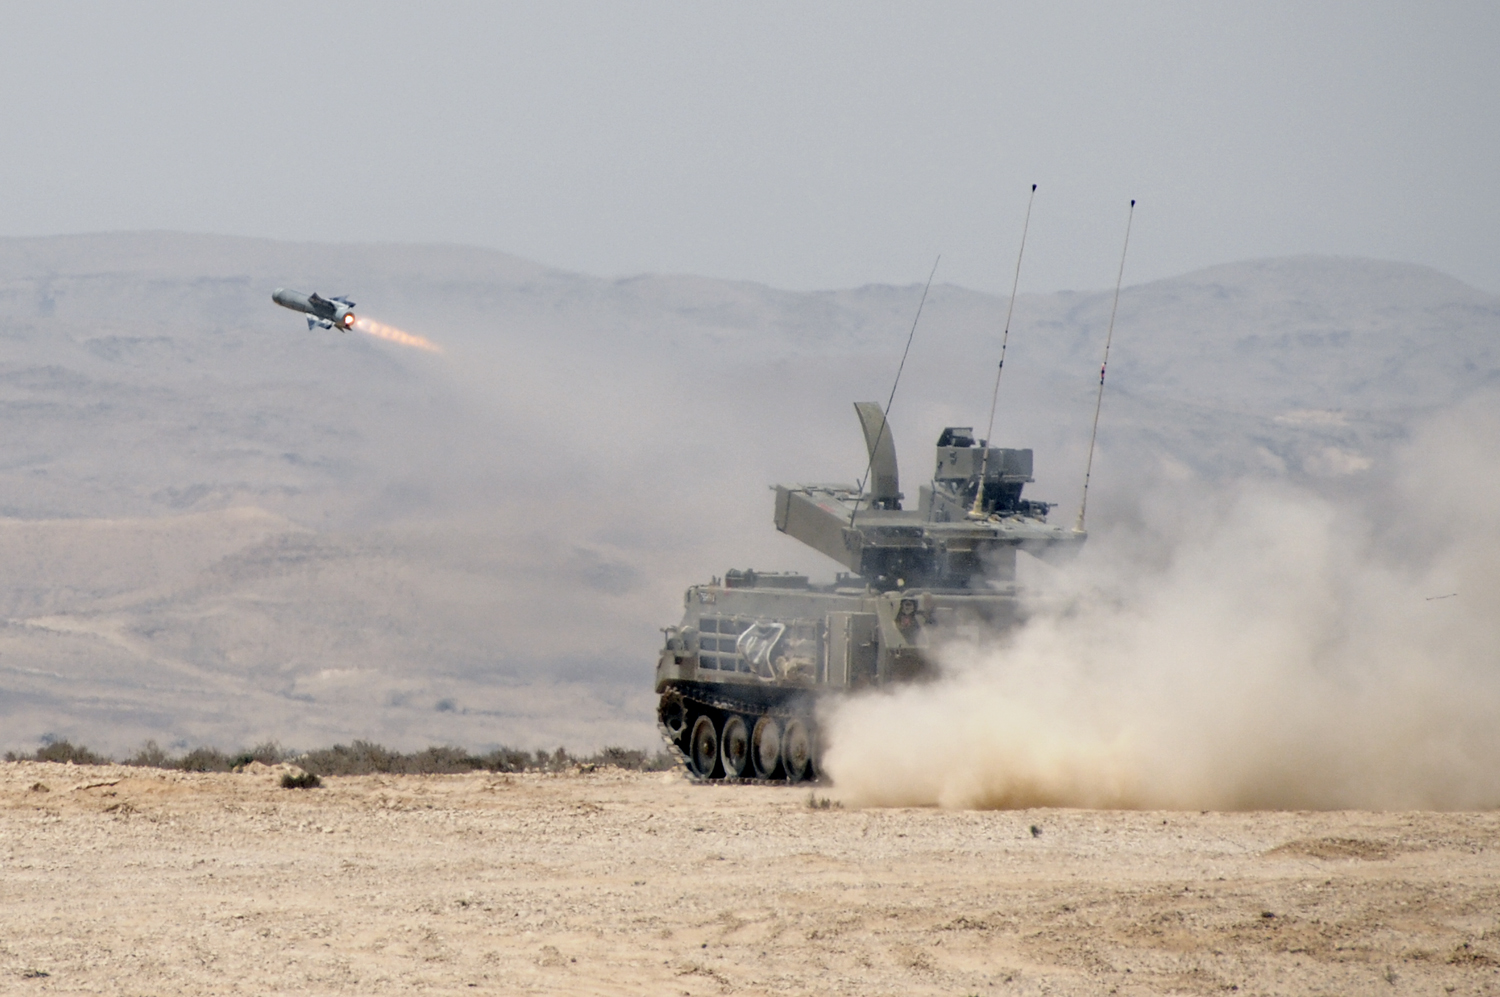 Israeli Guided Non-Line-of-Sight Missiles Target Rocket Launchers In Gaza (Videos)